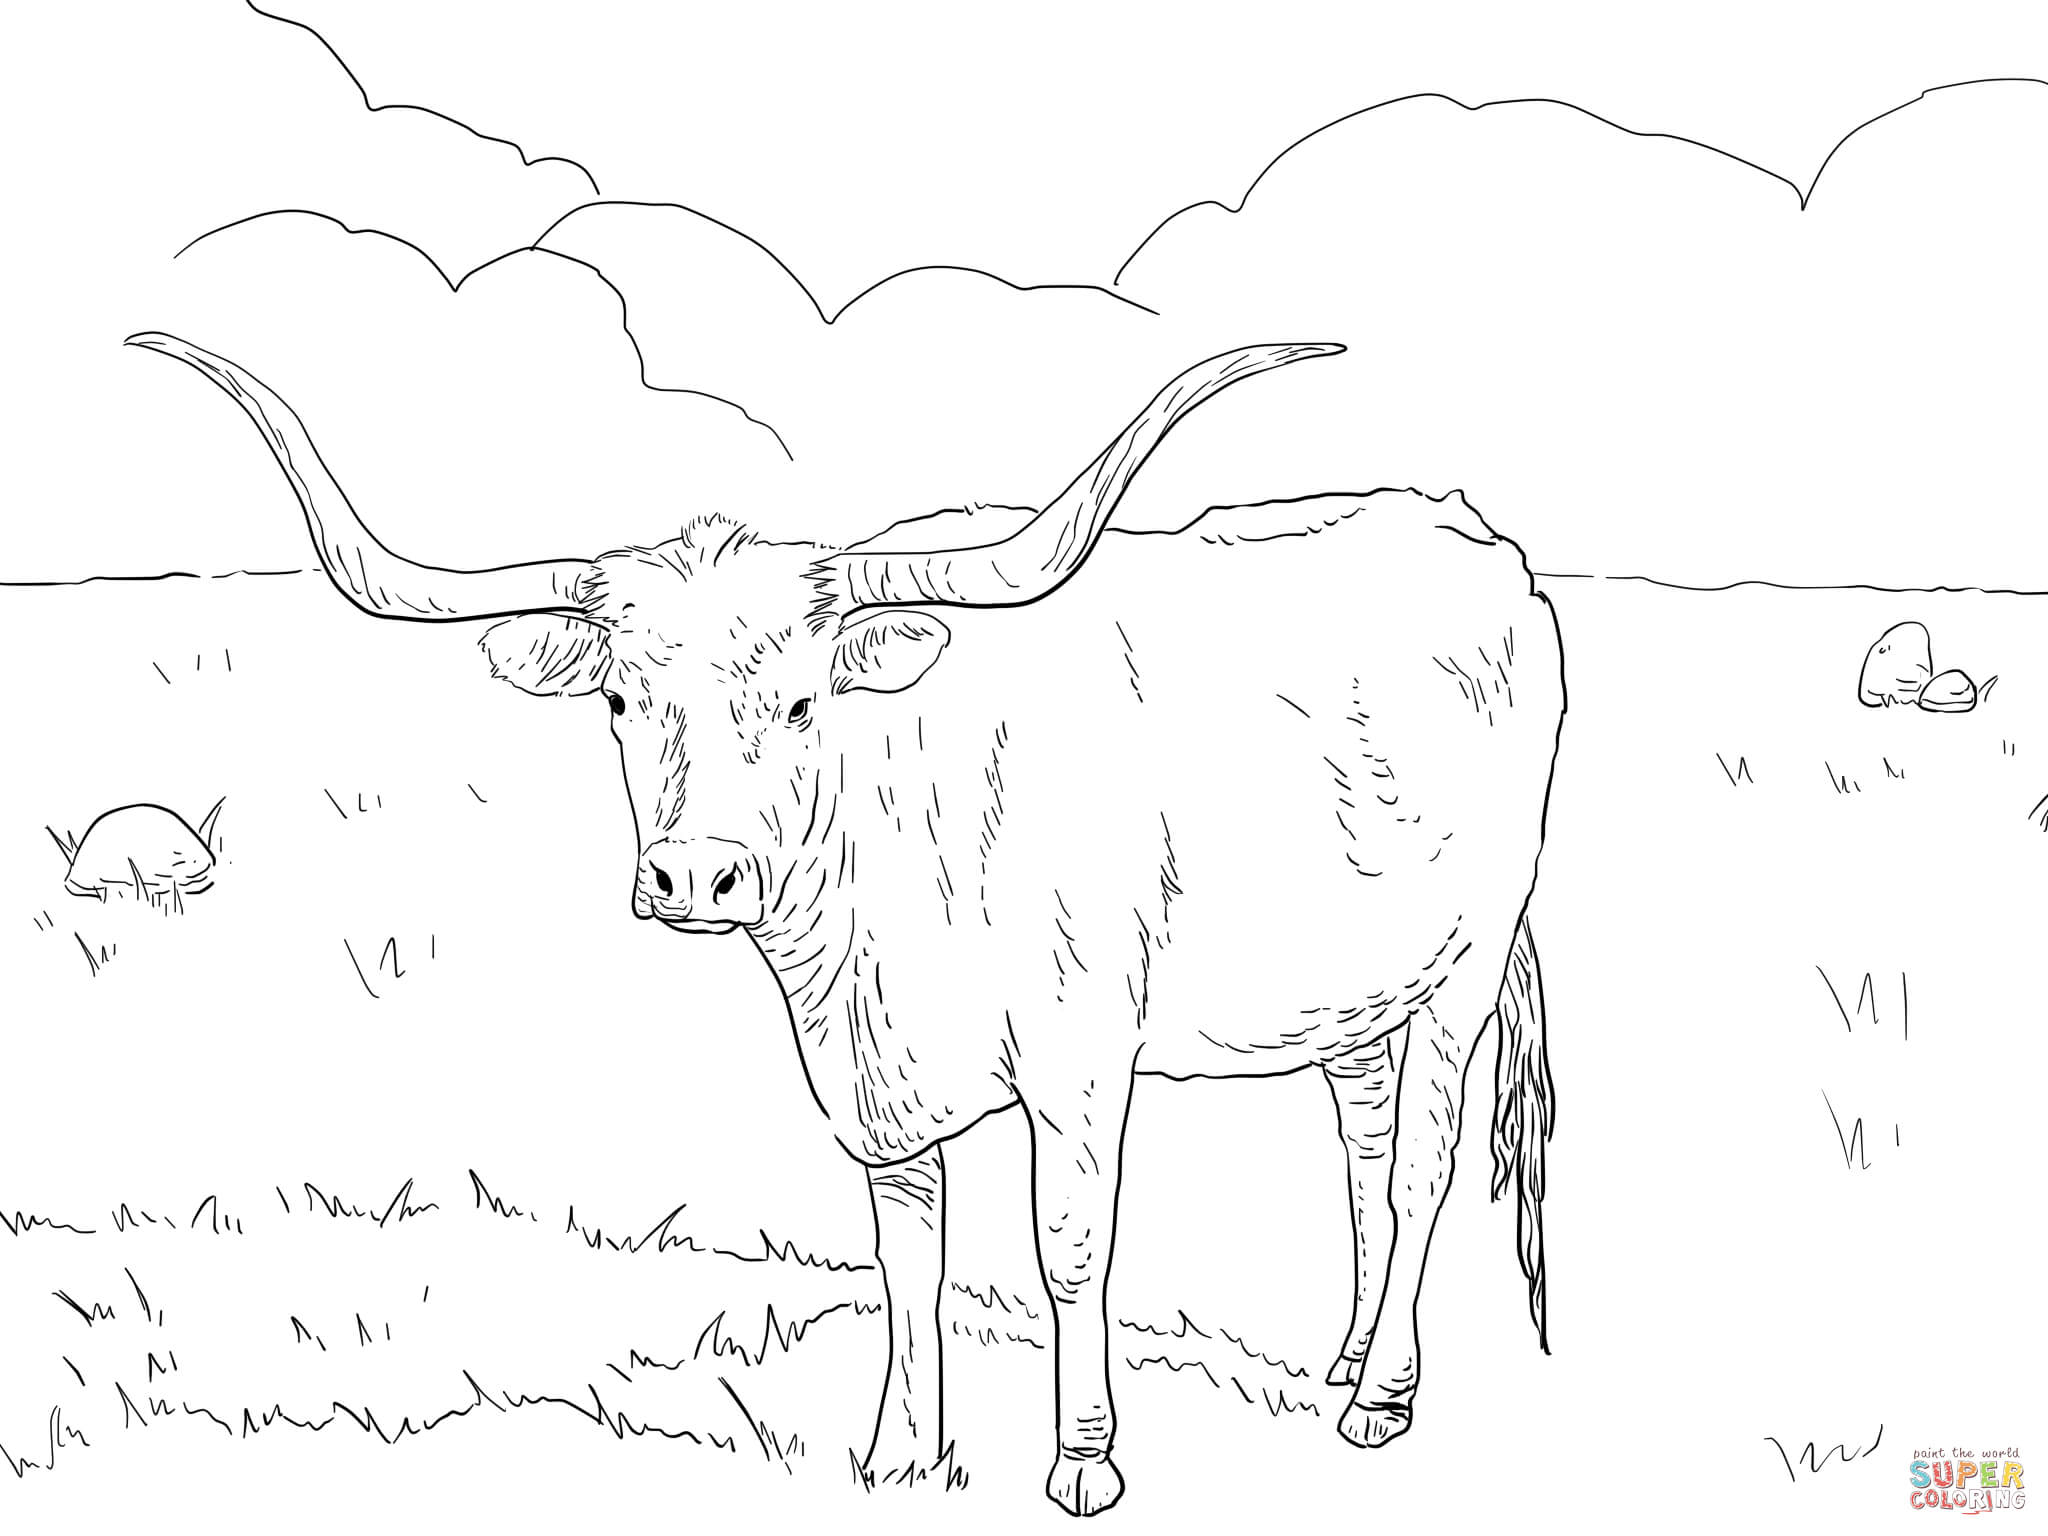 Steer Drawing at GetDrawings com | Free for personal use Steer